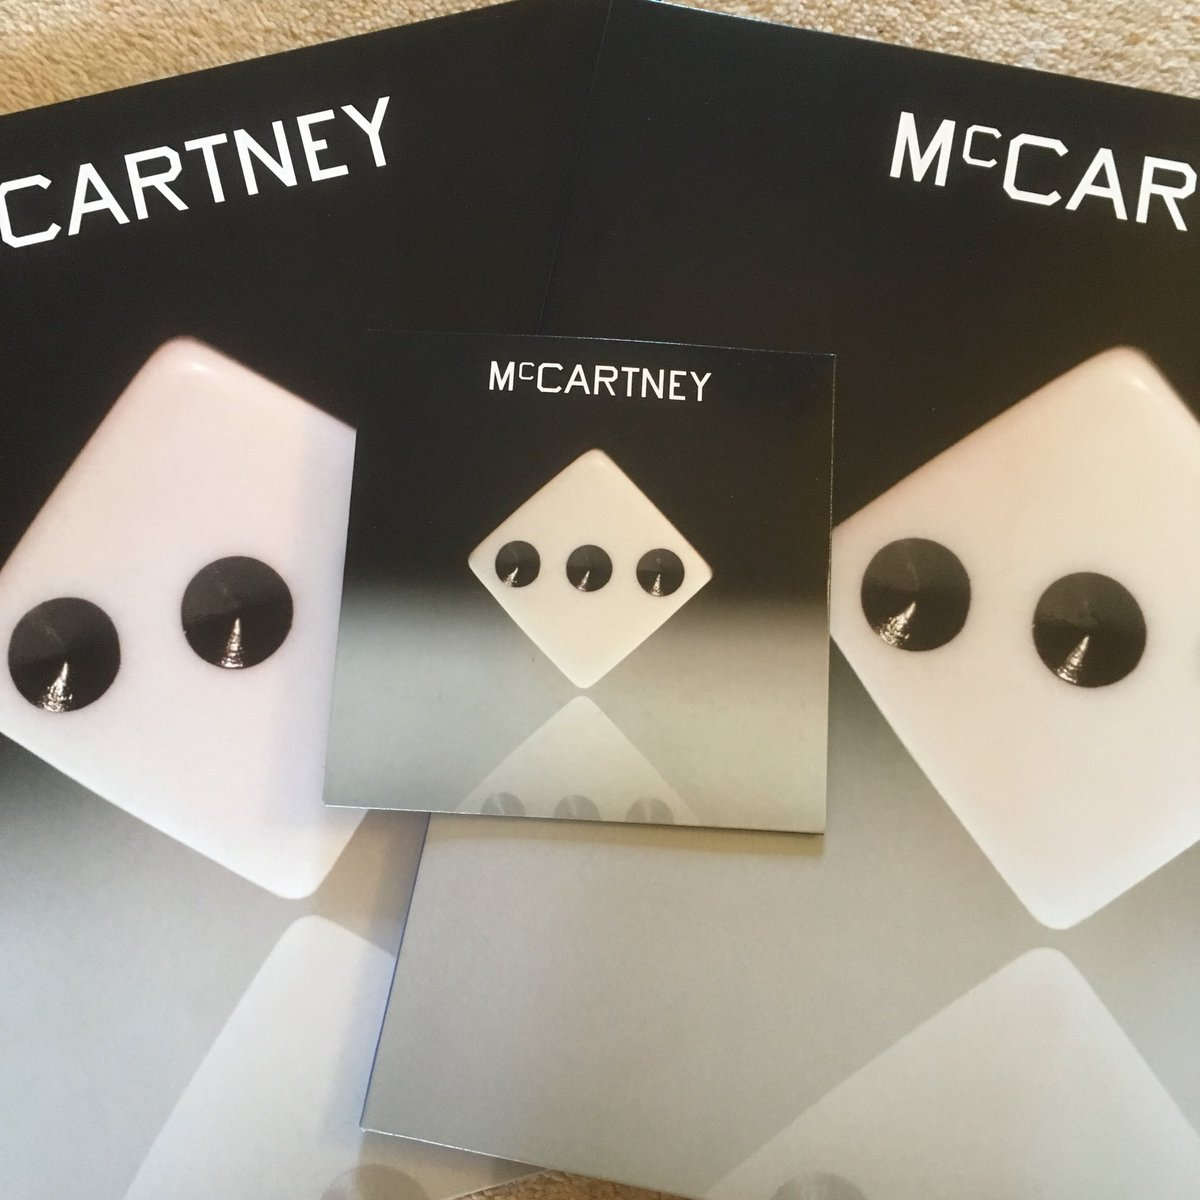 My CD (demo version) of #McCartneyIII finally came in the post.  Never gonna actually listen to it, but it's a nice addition to the collection.  #PaulMcCartney #PaulMcCartneyPodcast #vinyl #CD